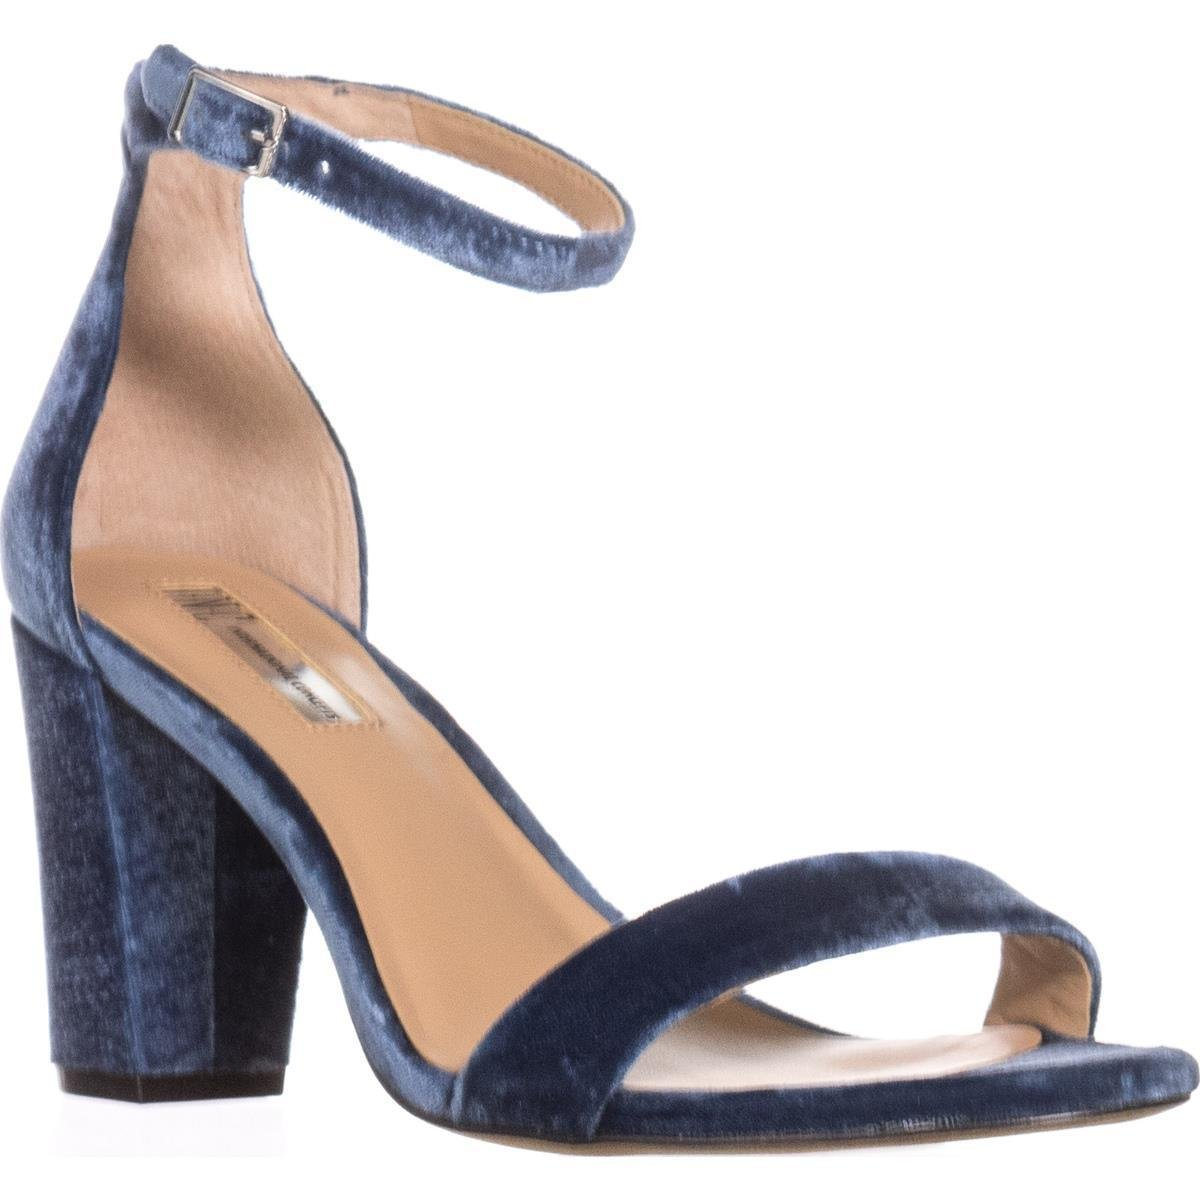 5a775cee65f INC International Concepts Womens Kivah Leather Open Toe Special Occasion  ANK.